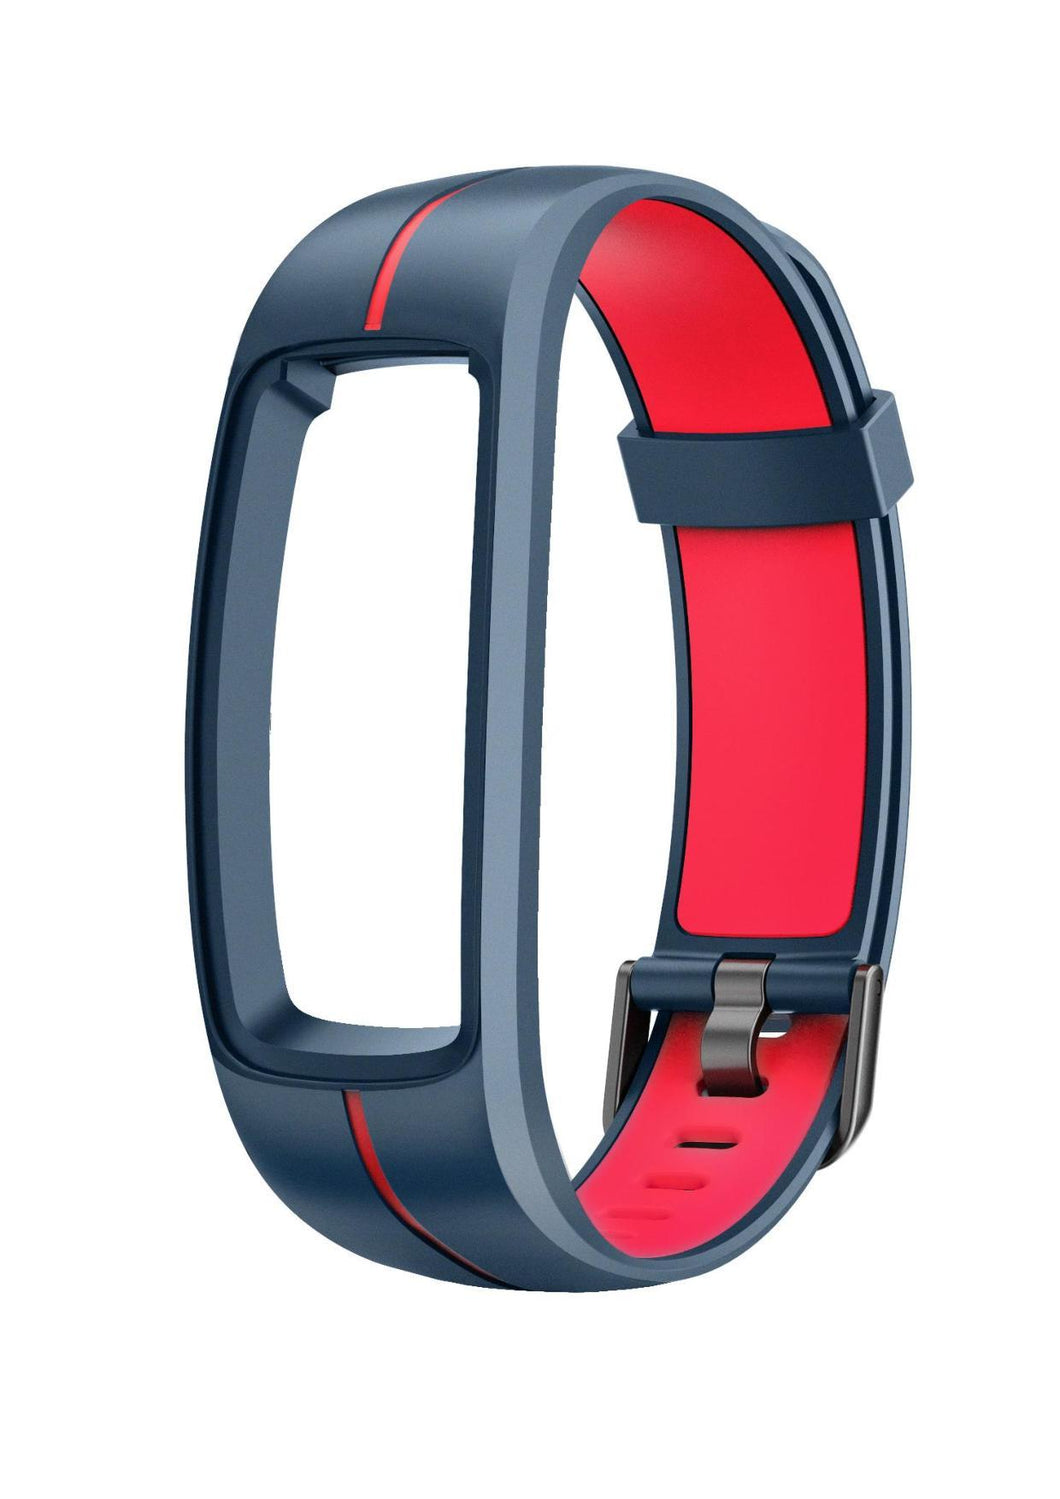 Stride - Interchangeable Smartwatch Band - Navy Blue / Red band for CAC-111-M03 Bands Cactus Watches